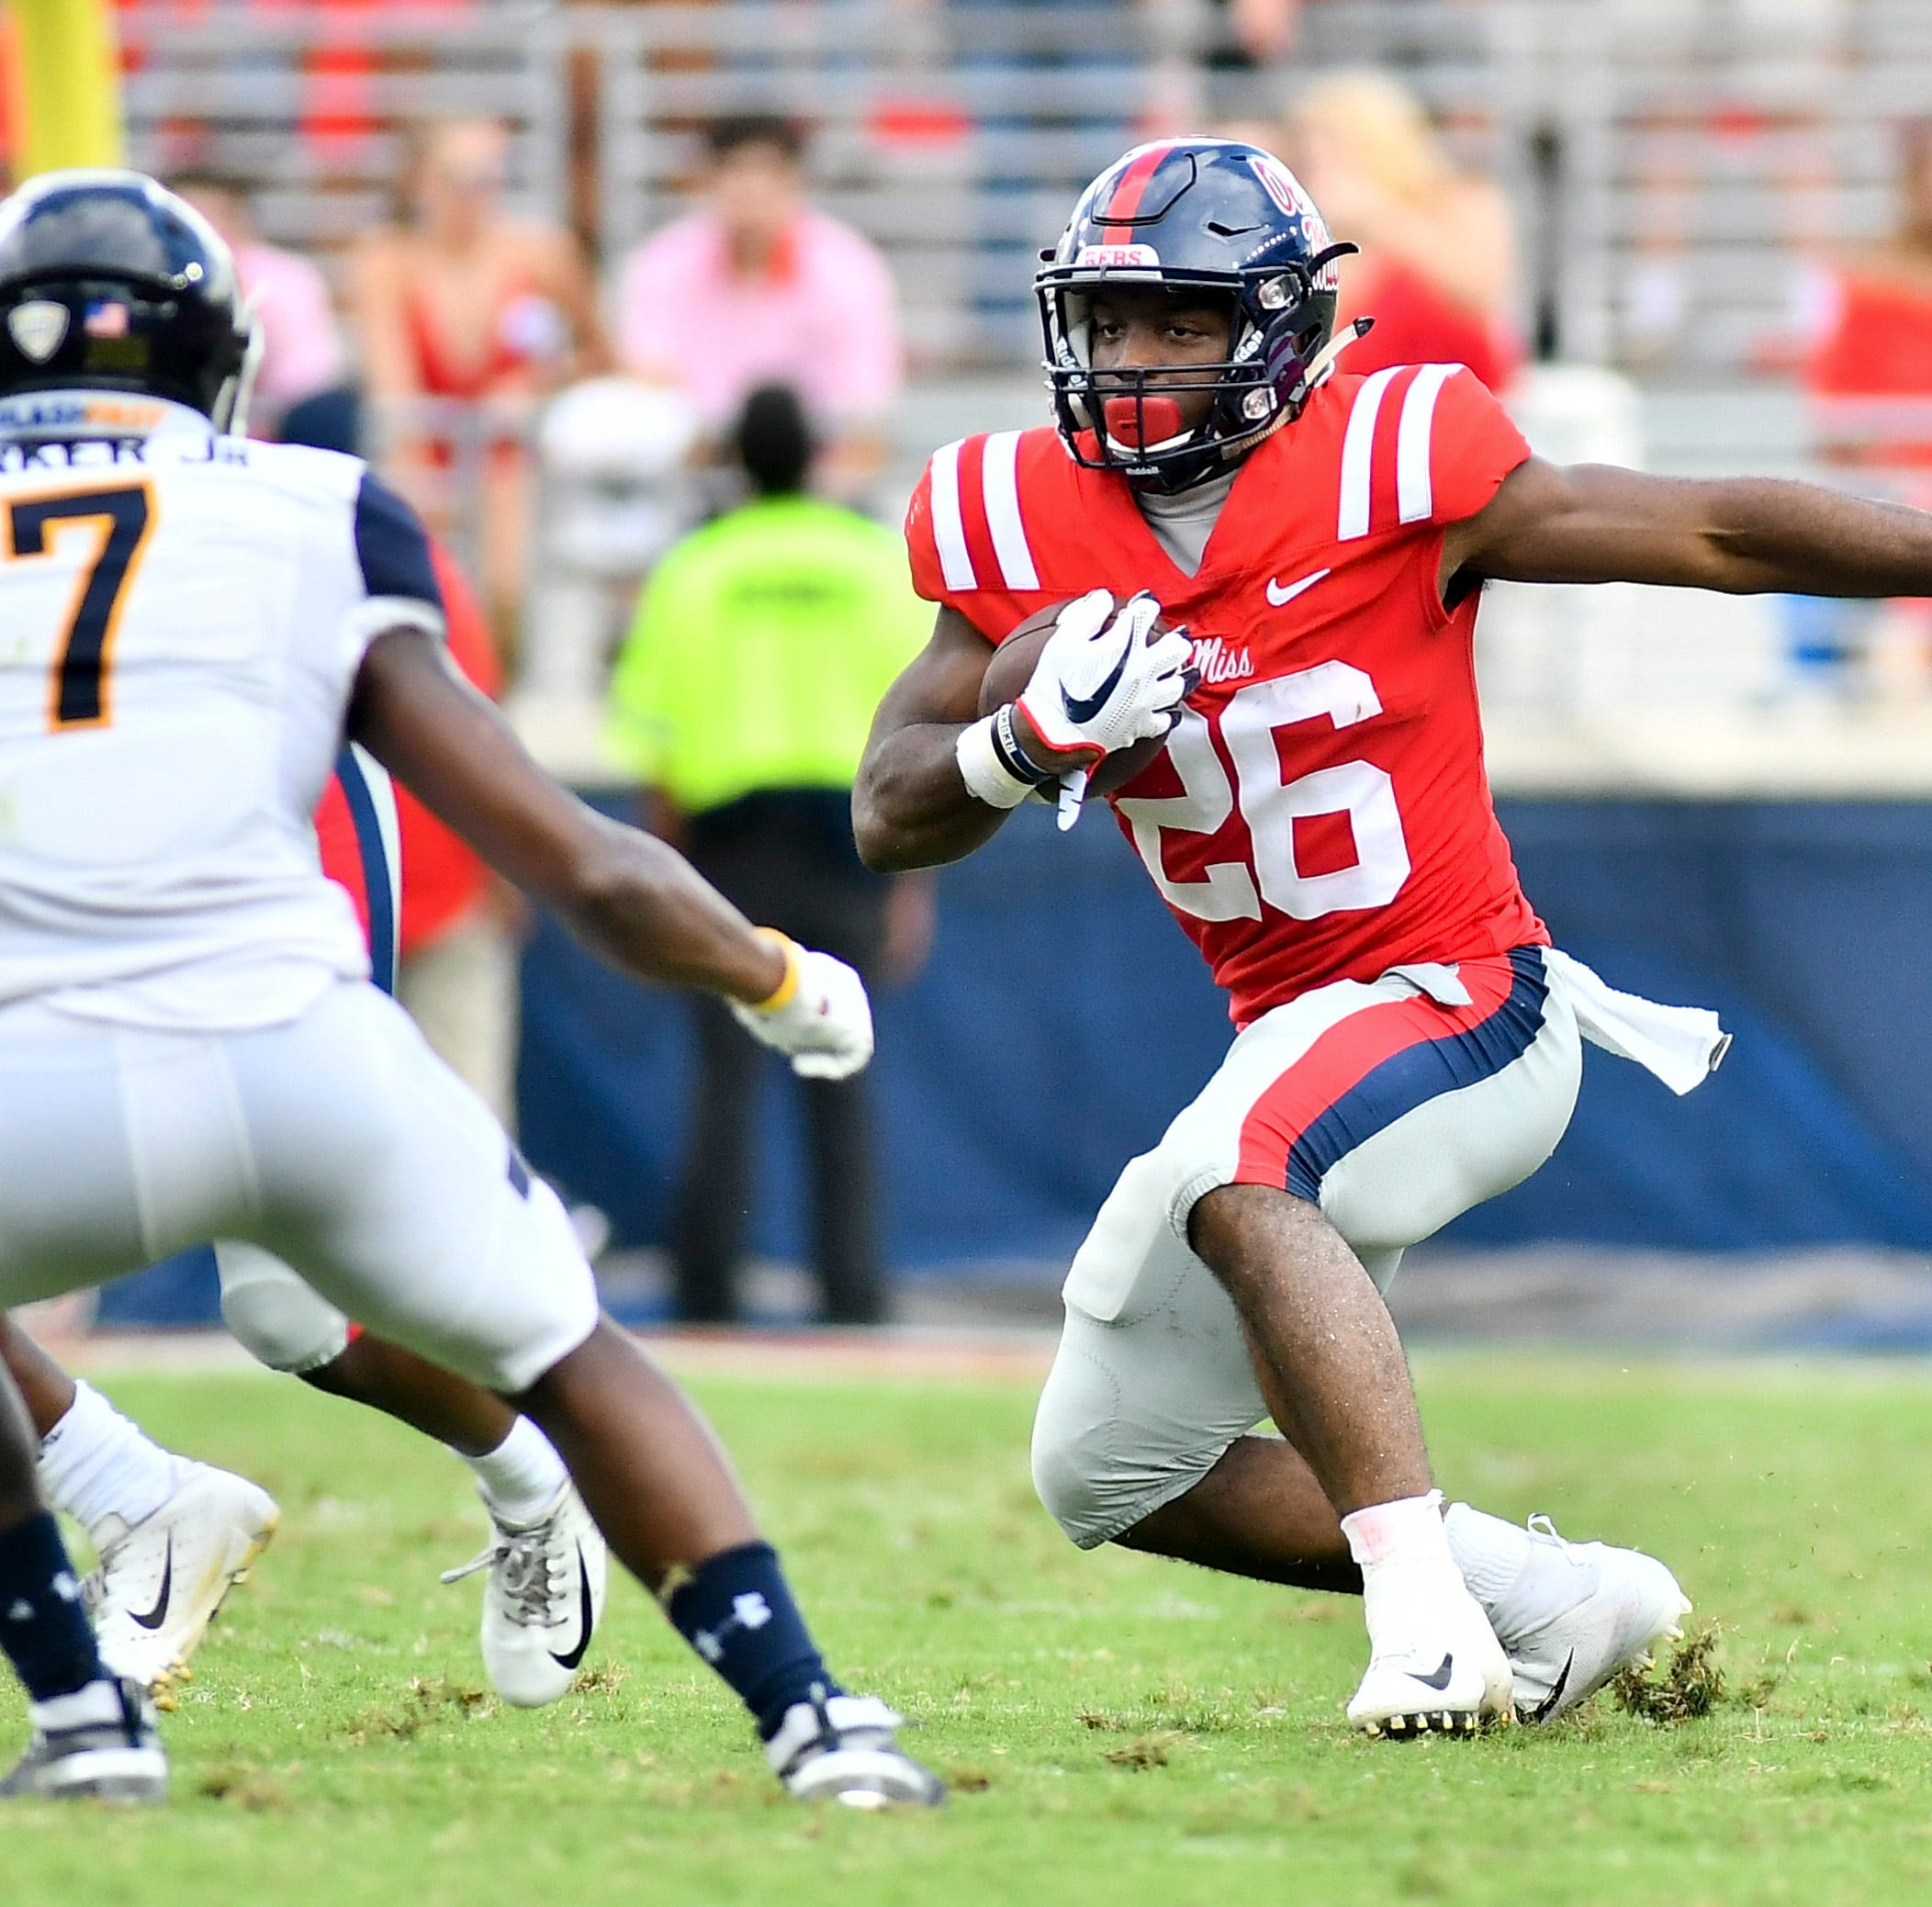 Ole Miss RB Isaiah Woullard steps up after Scottie Phillips' injury